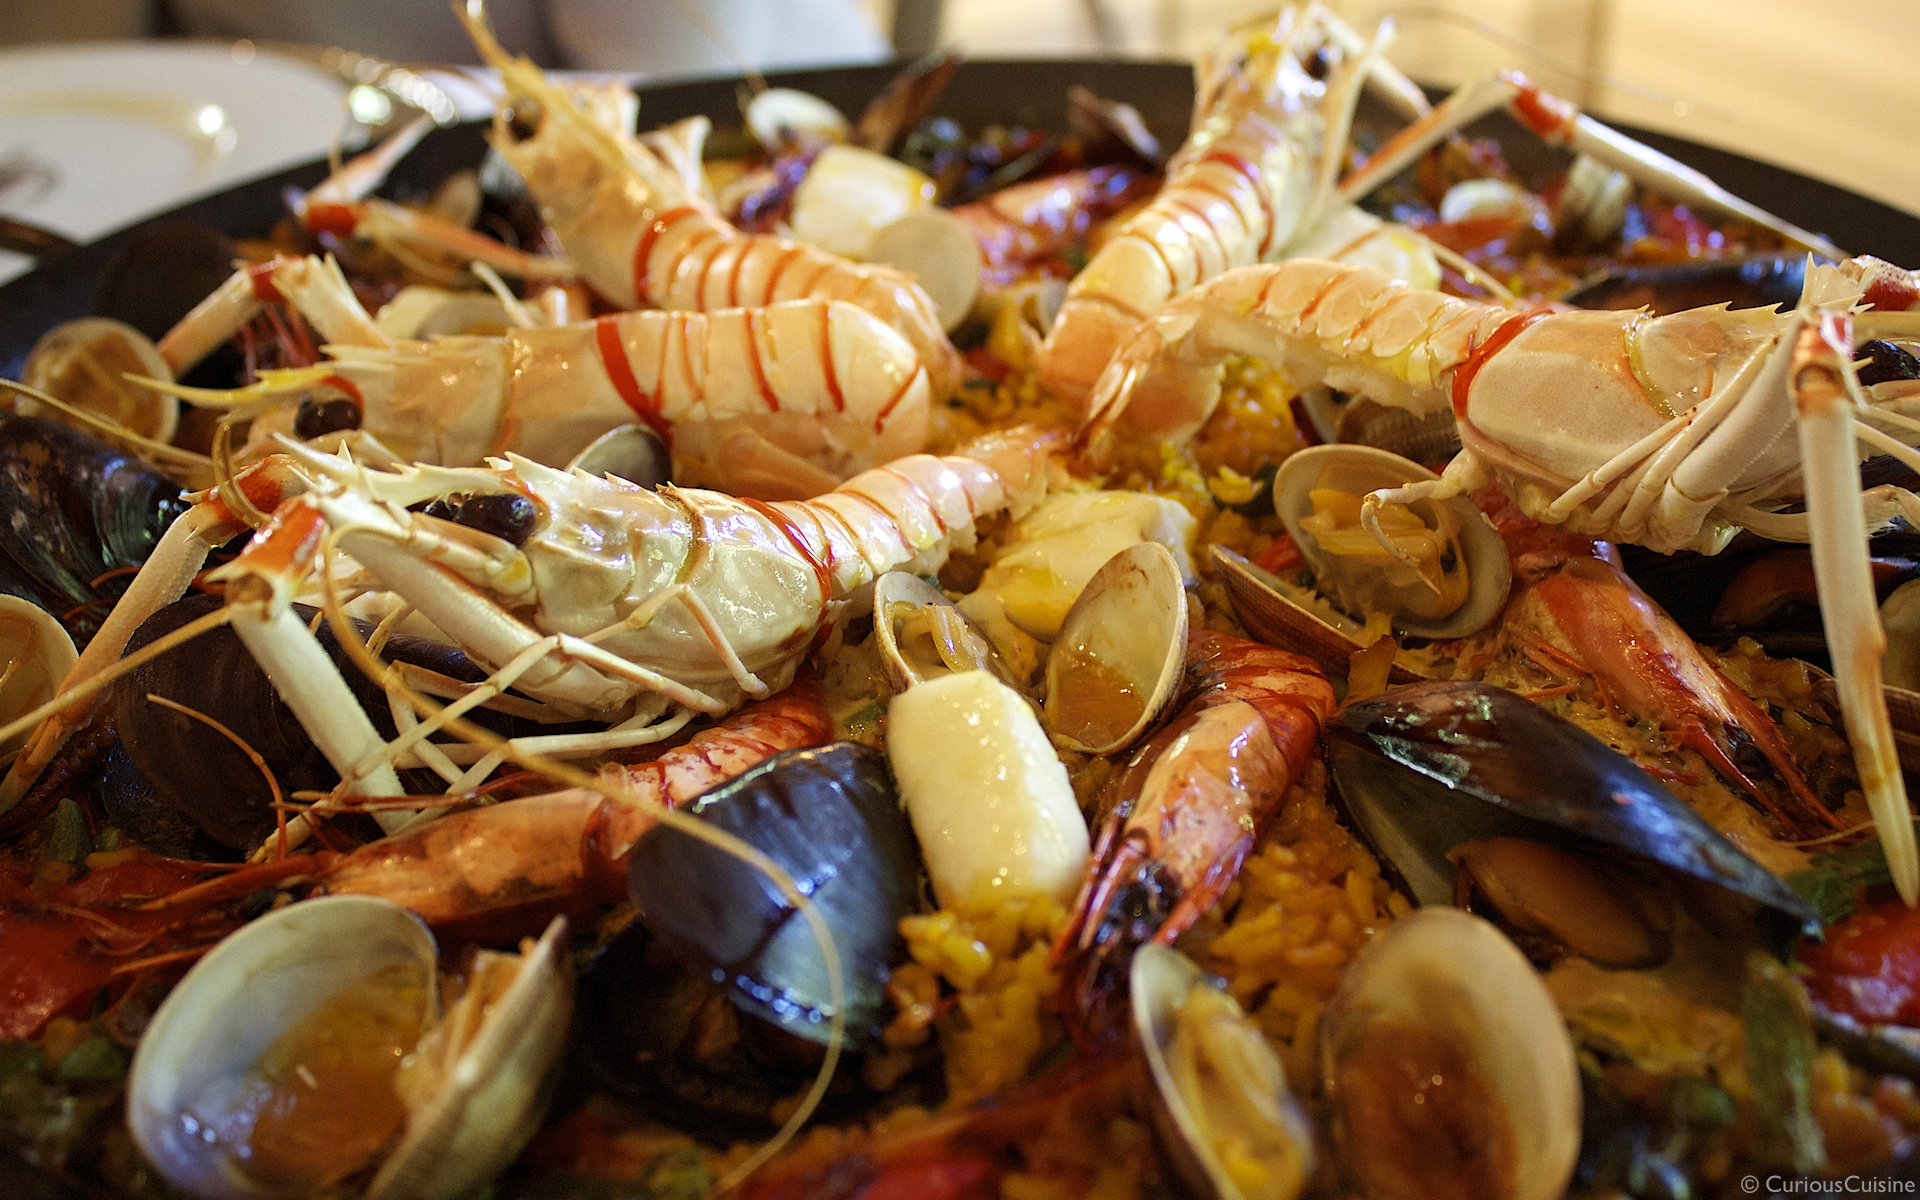 Showing Spanish food culture